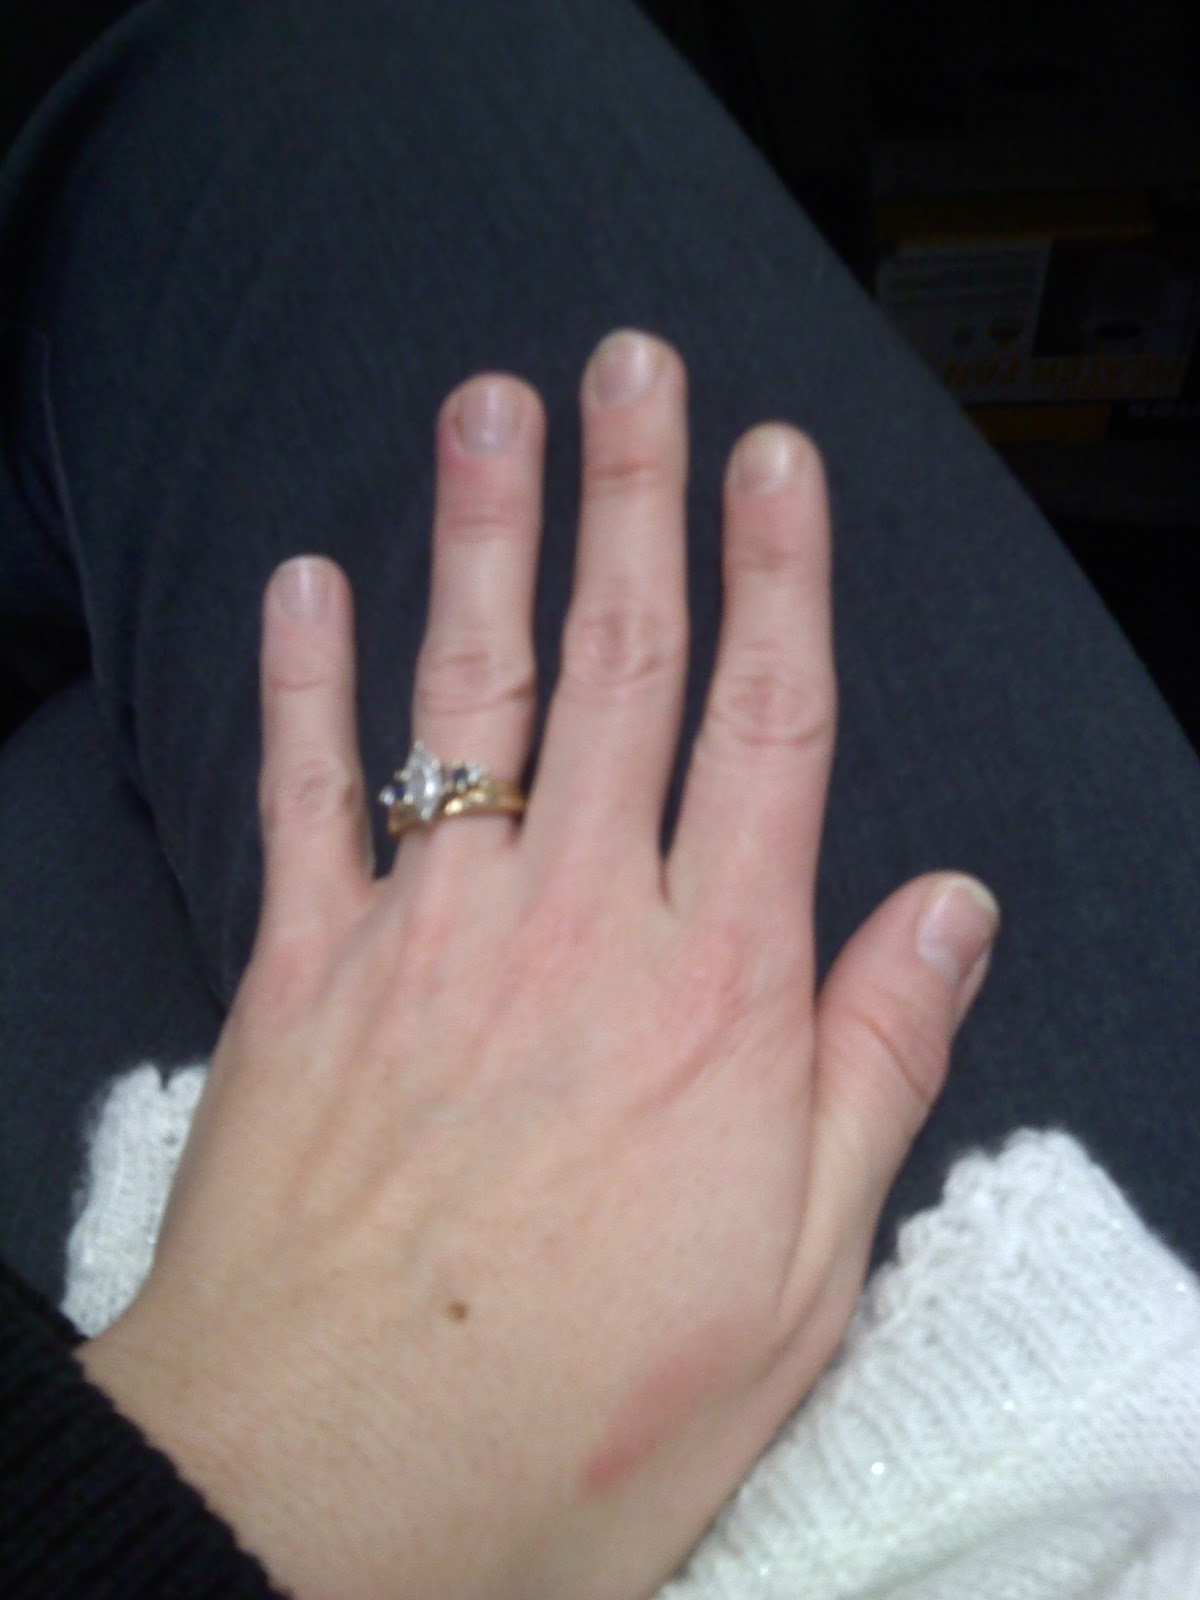 Behind the Stone Wall: My Honest Opinion: Nail polish is not for ...